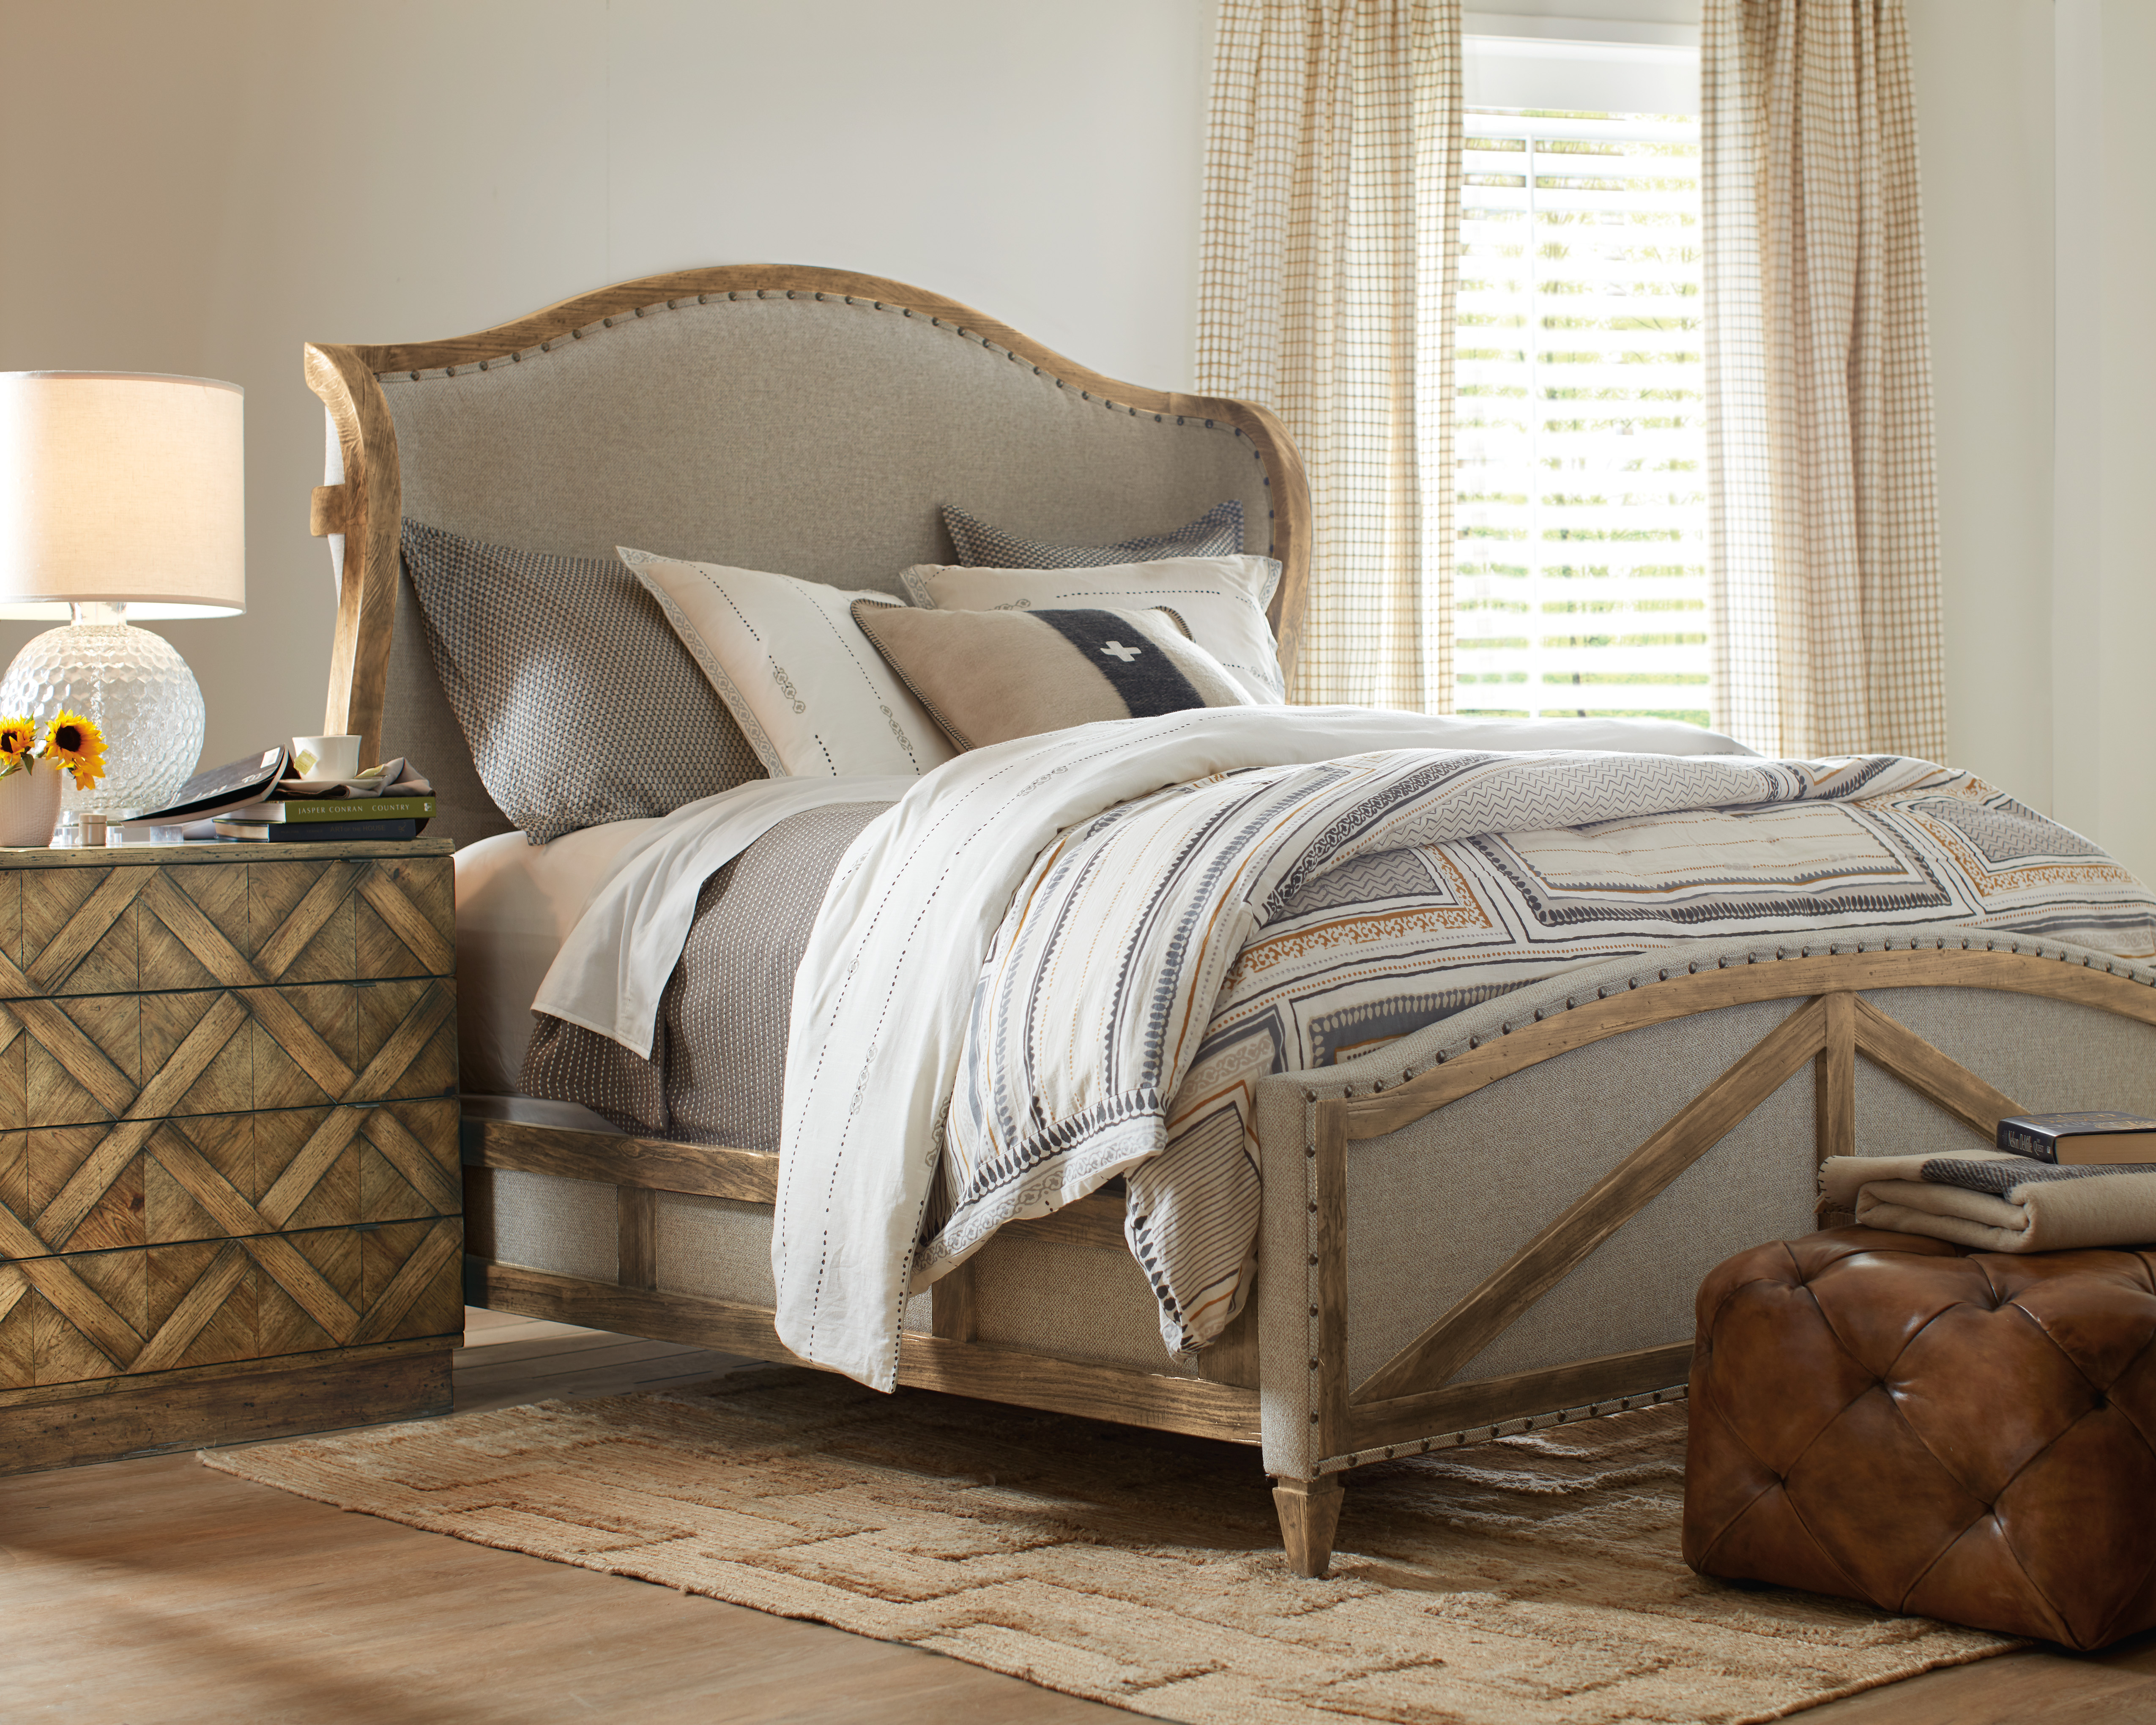 Hooker-Furniture-American-Life-Roslyn-County-Collection-bed